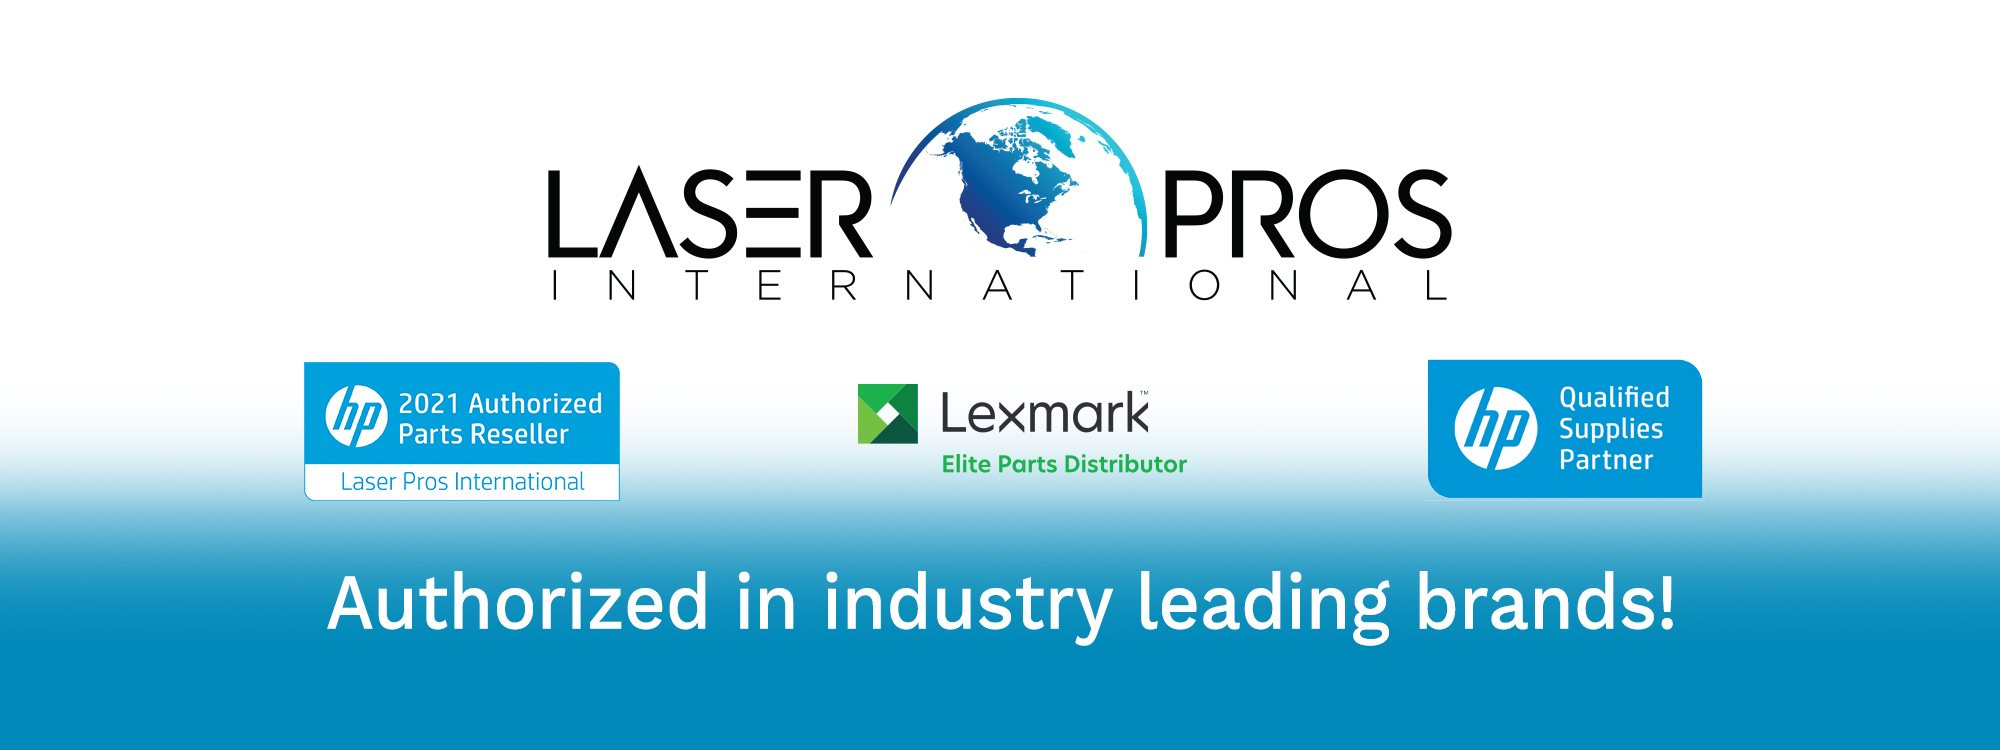 Authorized in industry leading brands